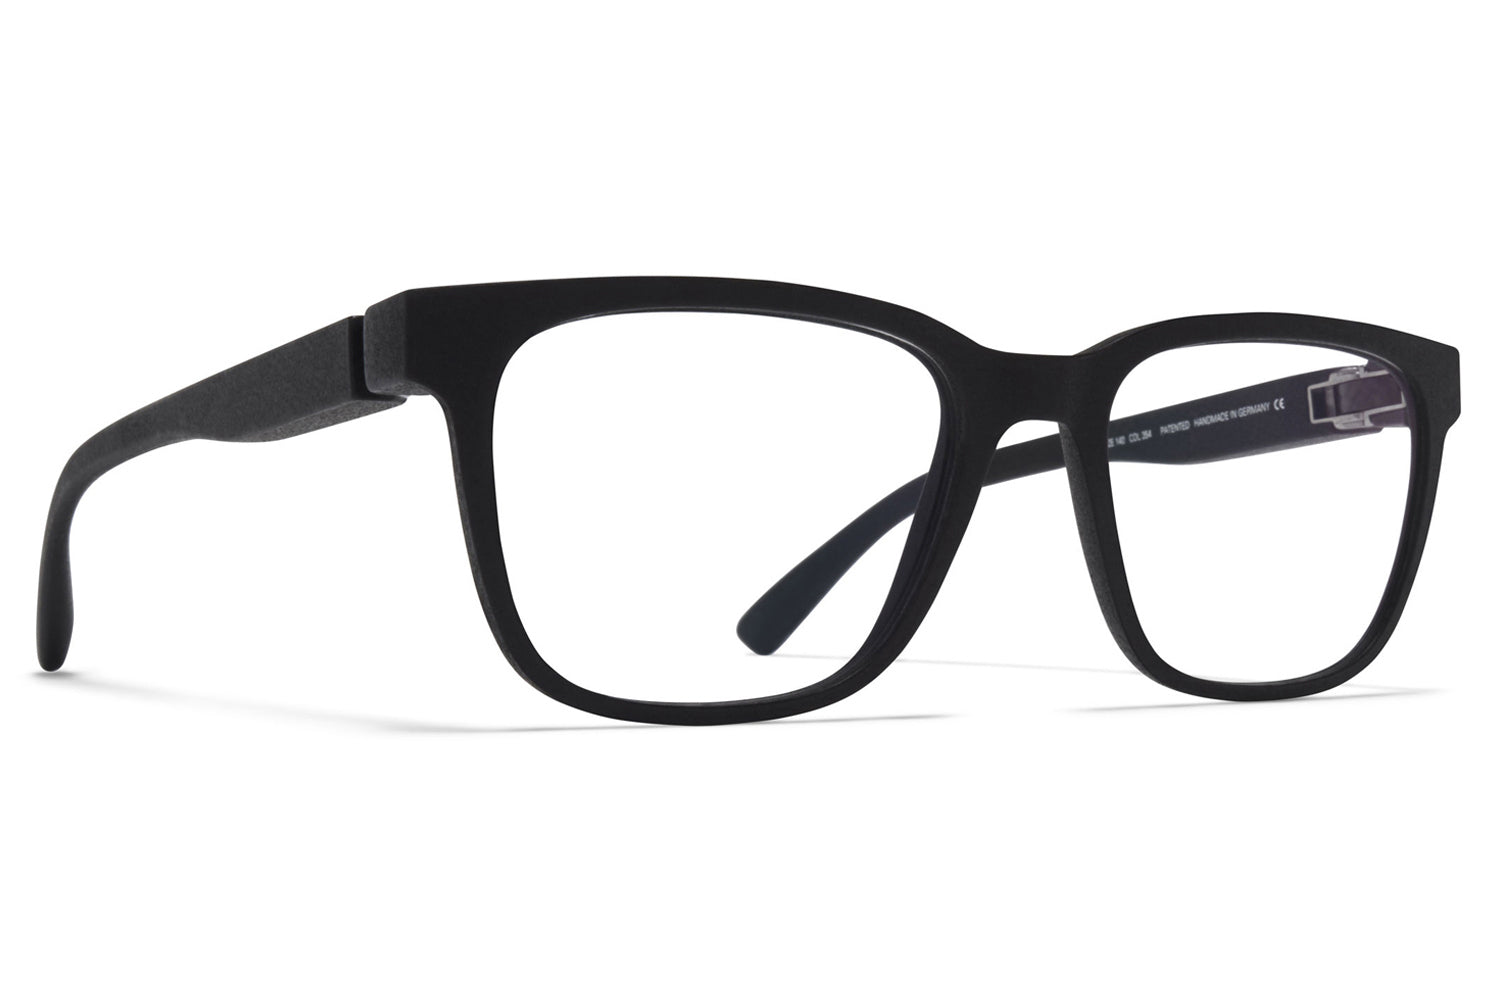 MYKITA Mylon - Solo Eyeglasses MD1 - Pitch Black